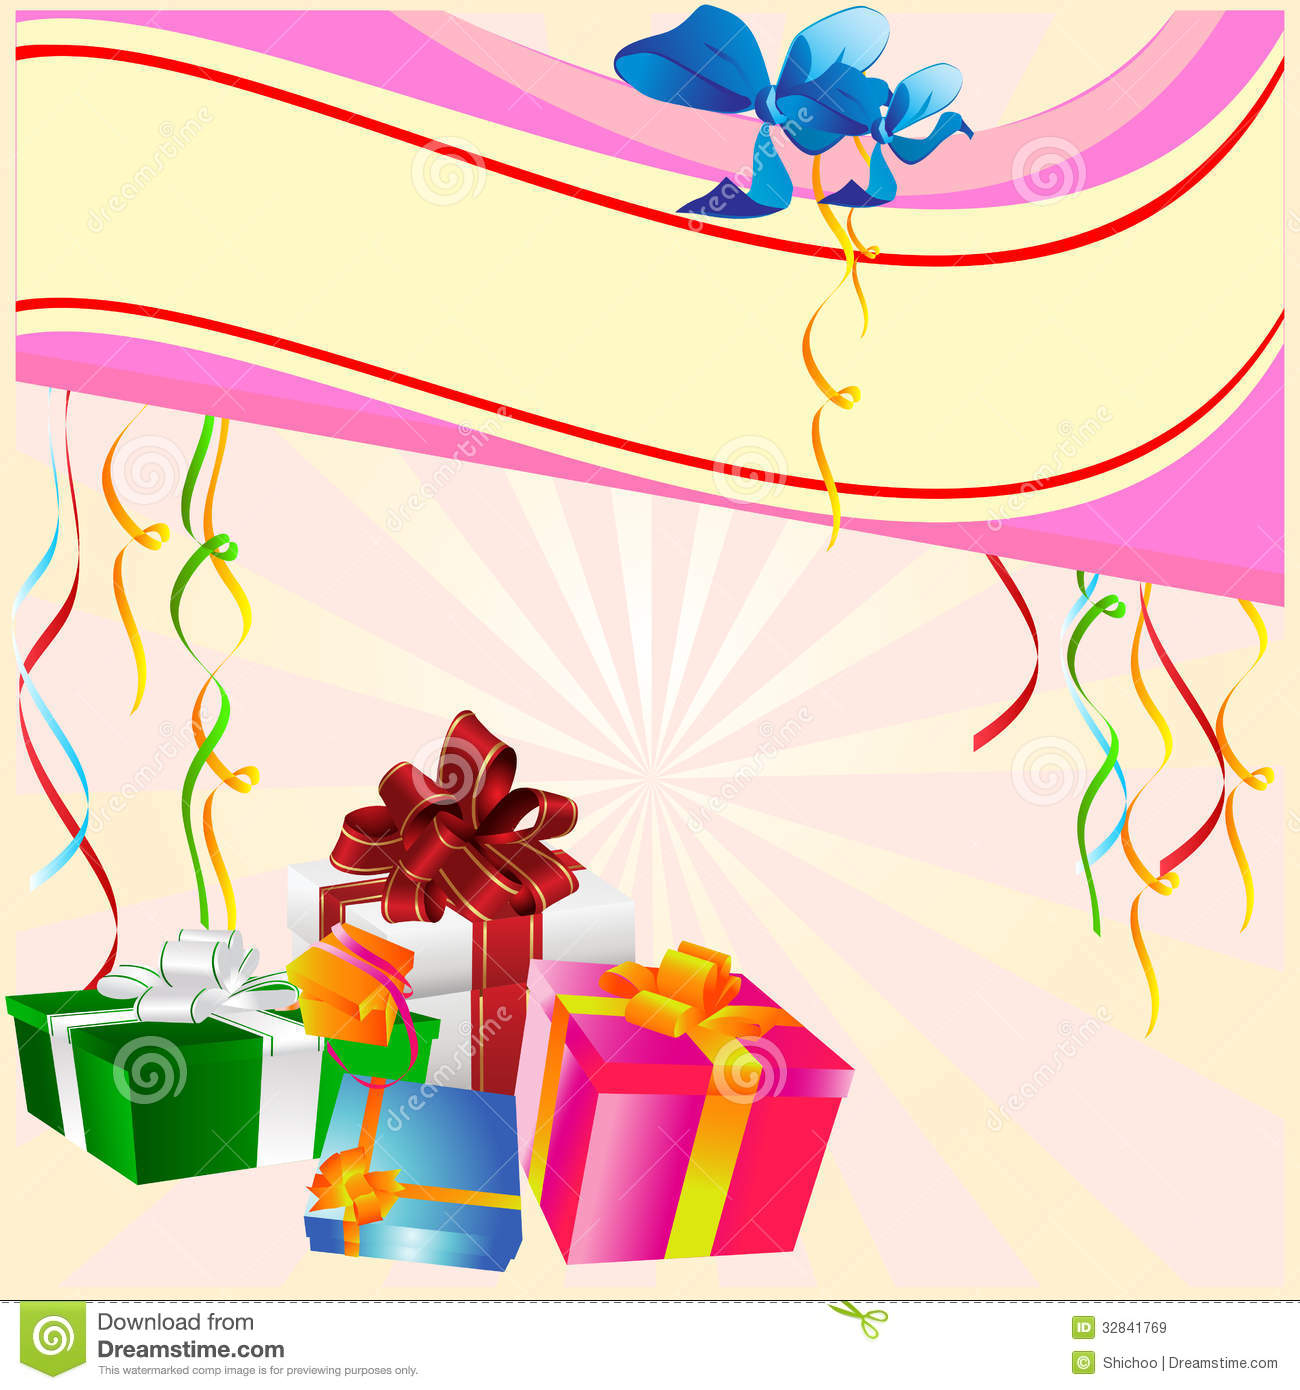 birthday message background ; birthday-background-deliver-box-large-oval-attach-to-your-message-throughout-every-season-32841769